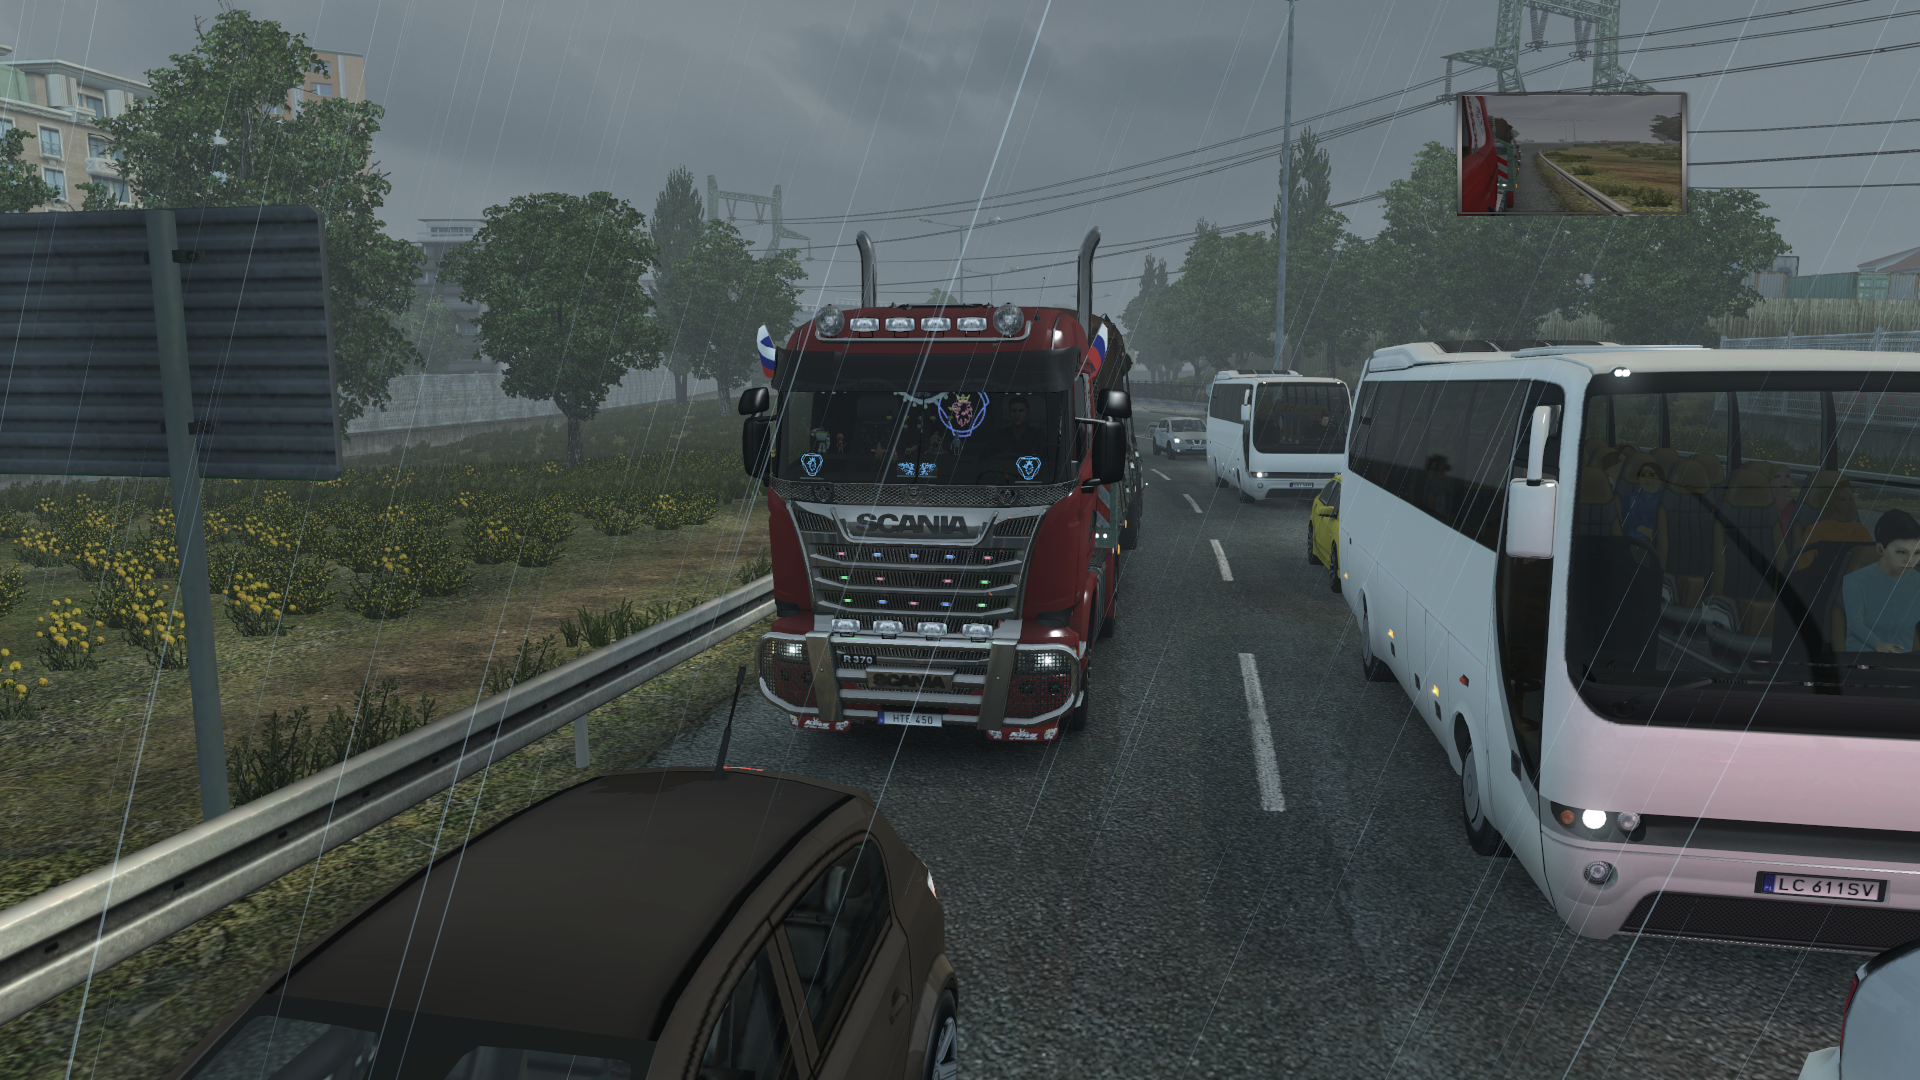 ets2_20180501_014742_00.png - -